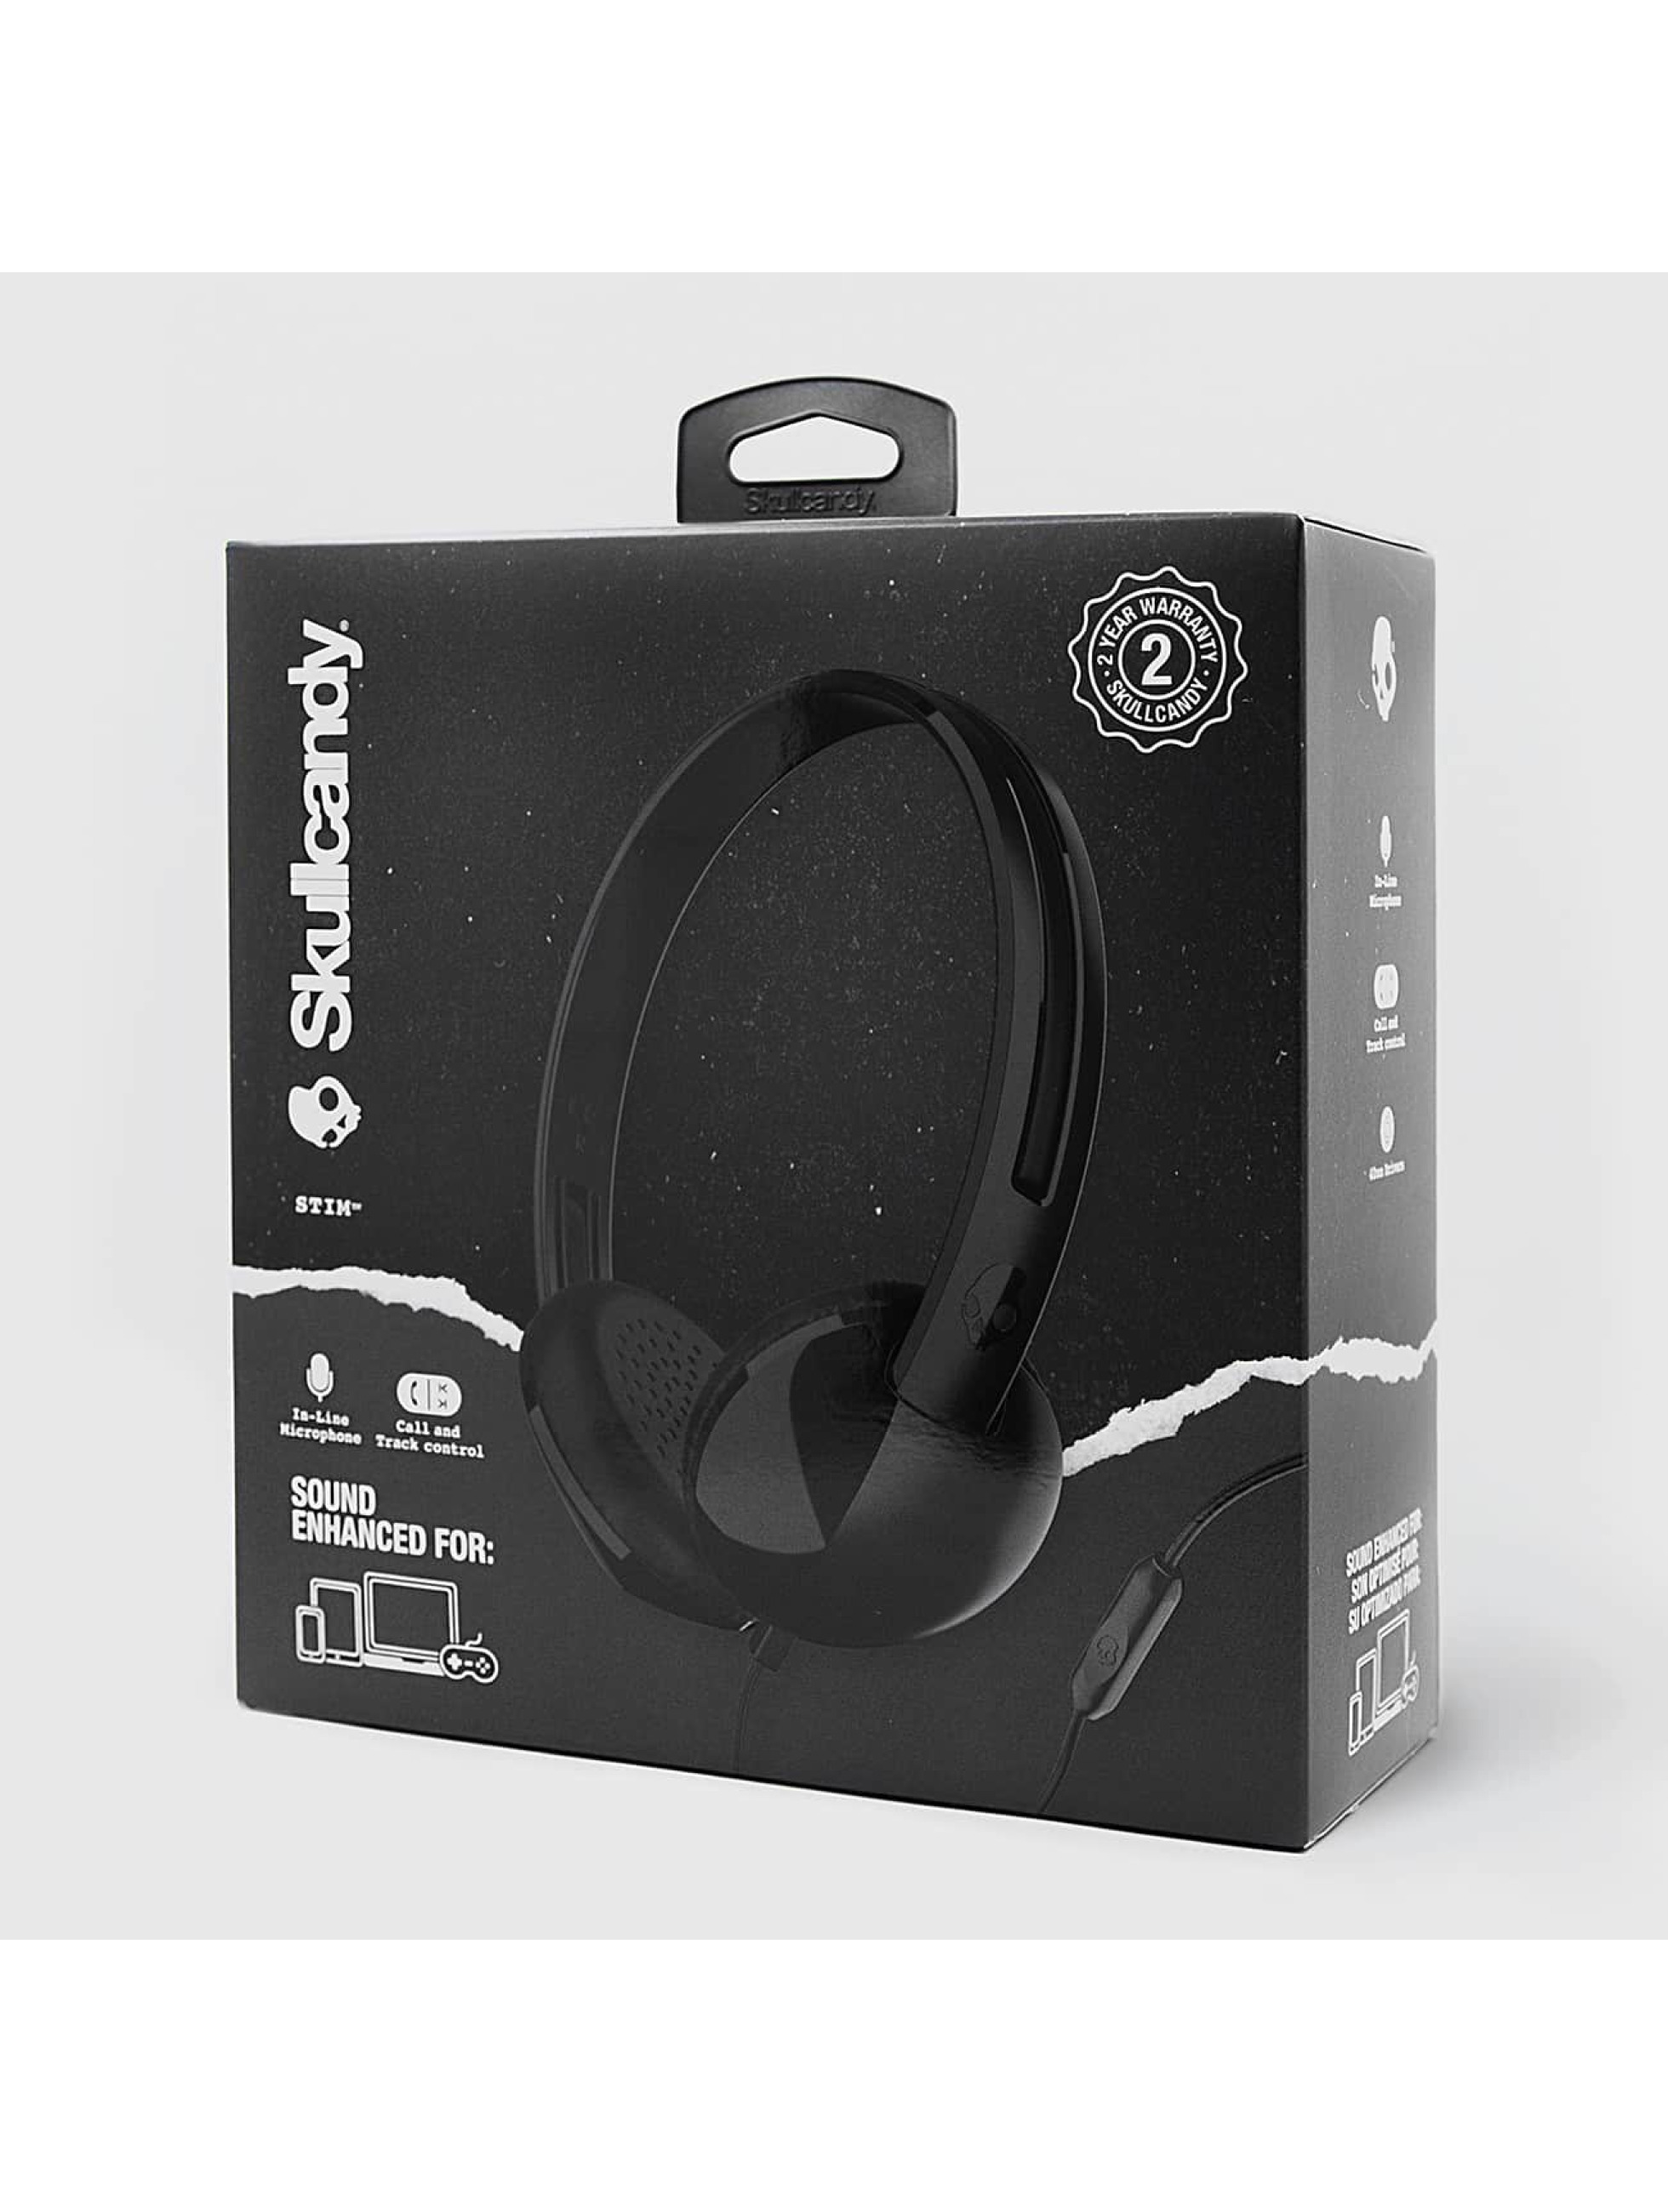 Skullcandy Sluchátka Stim Mic 1 On Ear čern